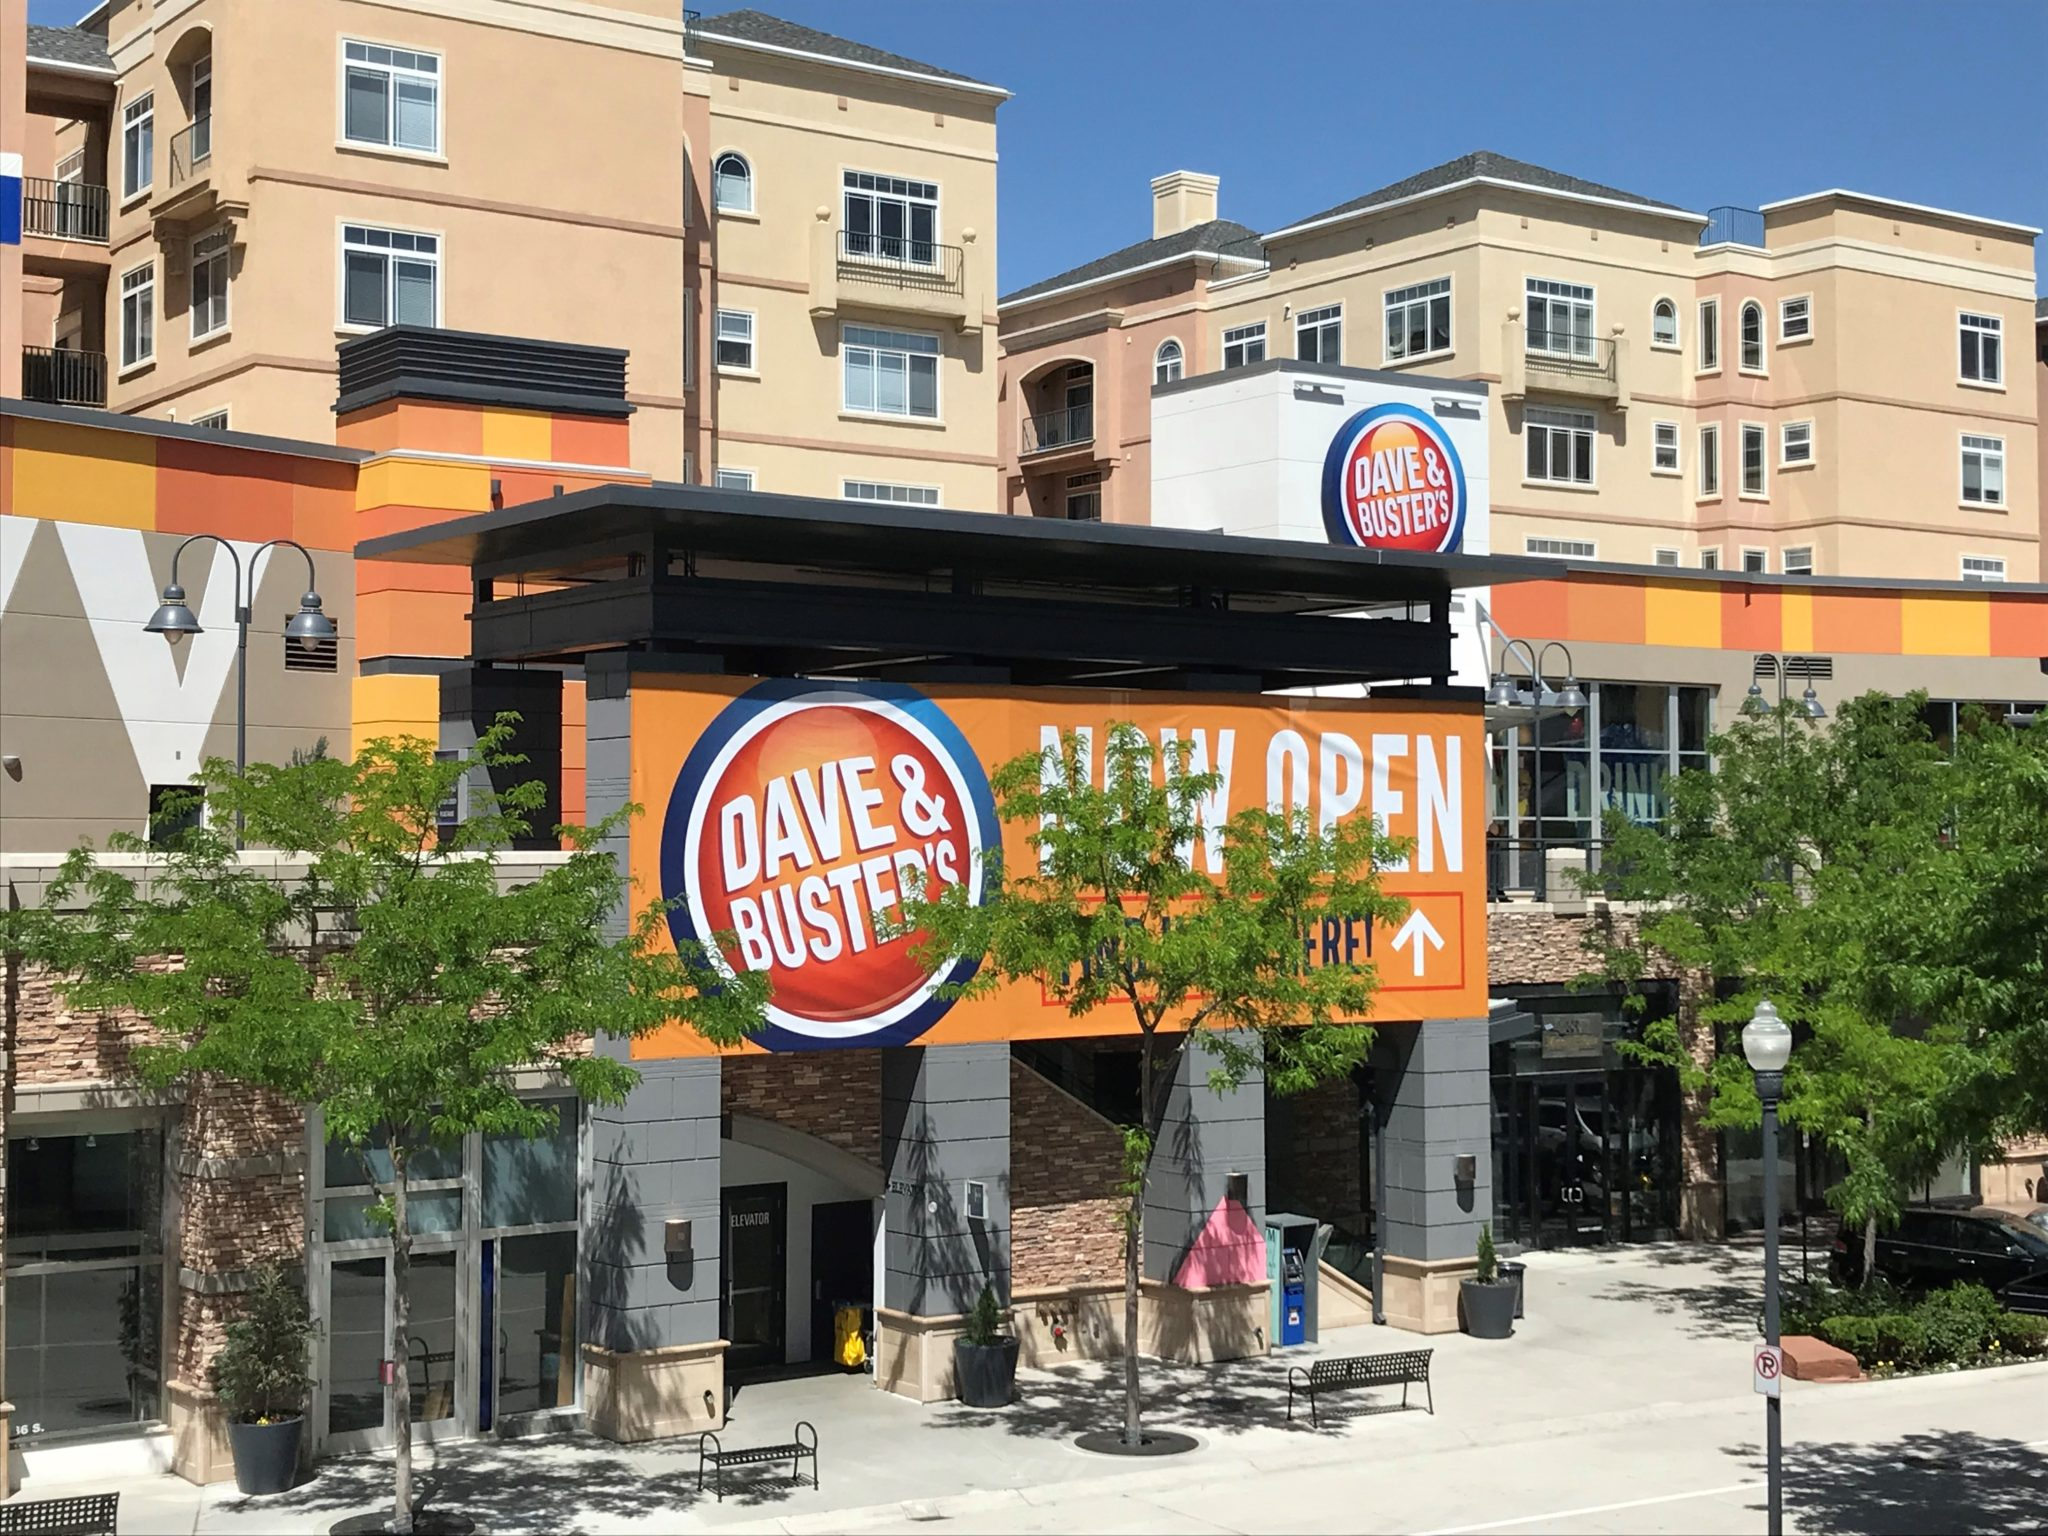 Dave & Buster's Broker Event at The Gateway